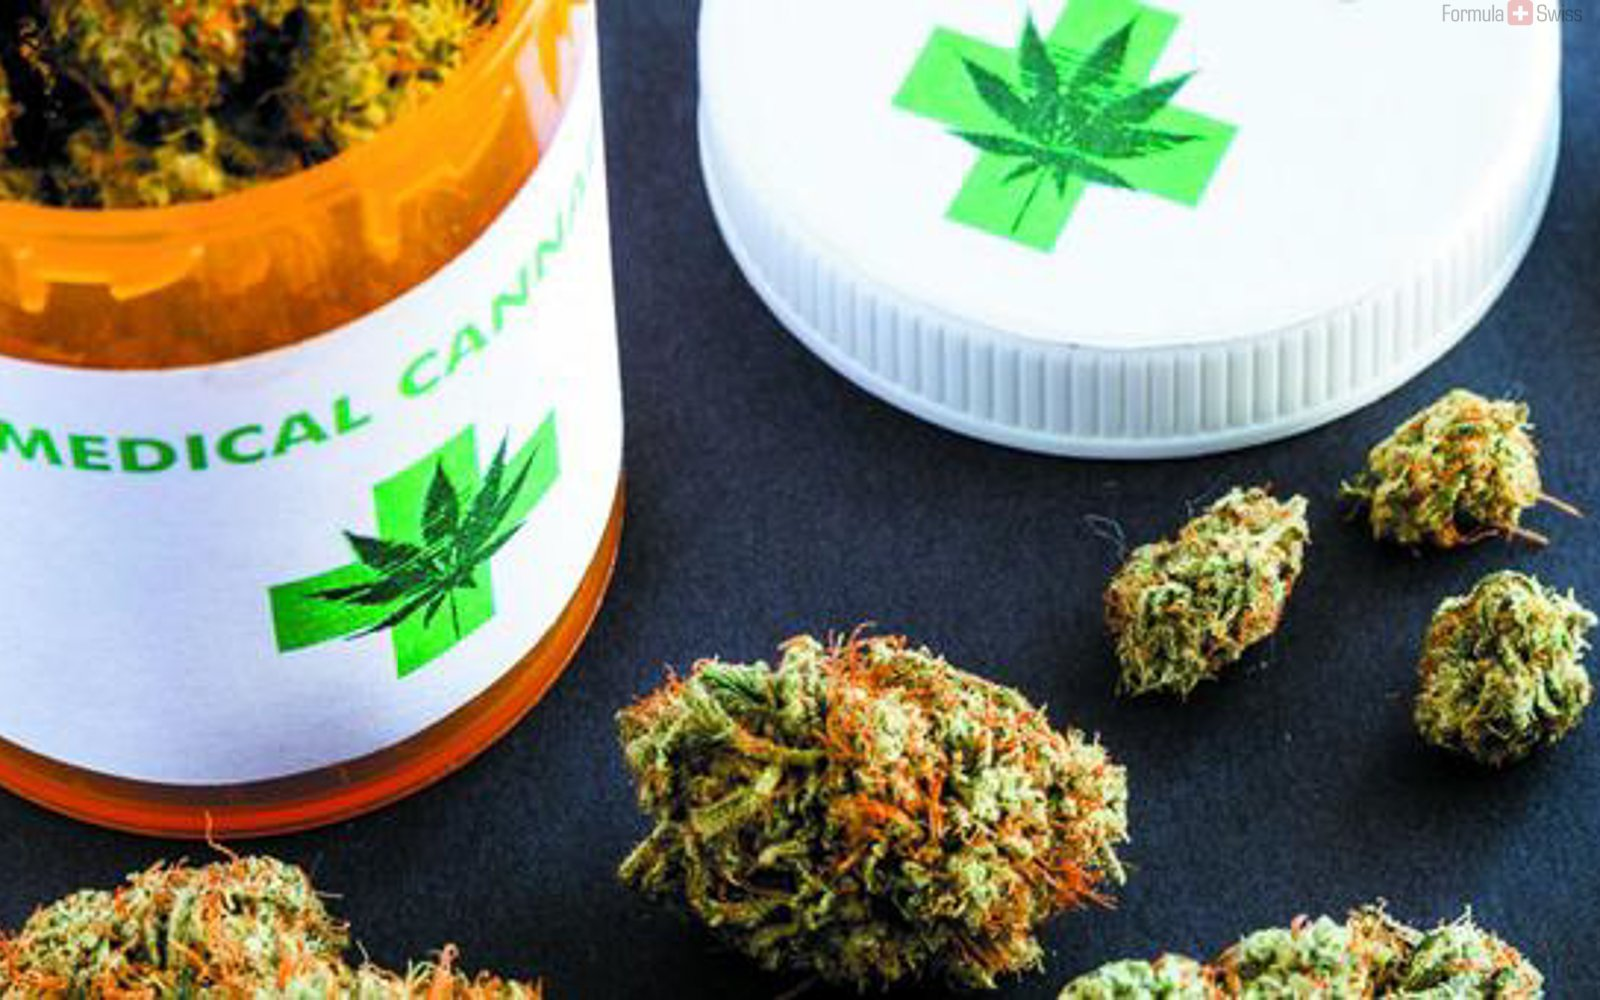 Cannabinoids is here to stay as medicine